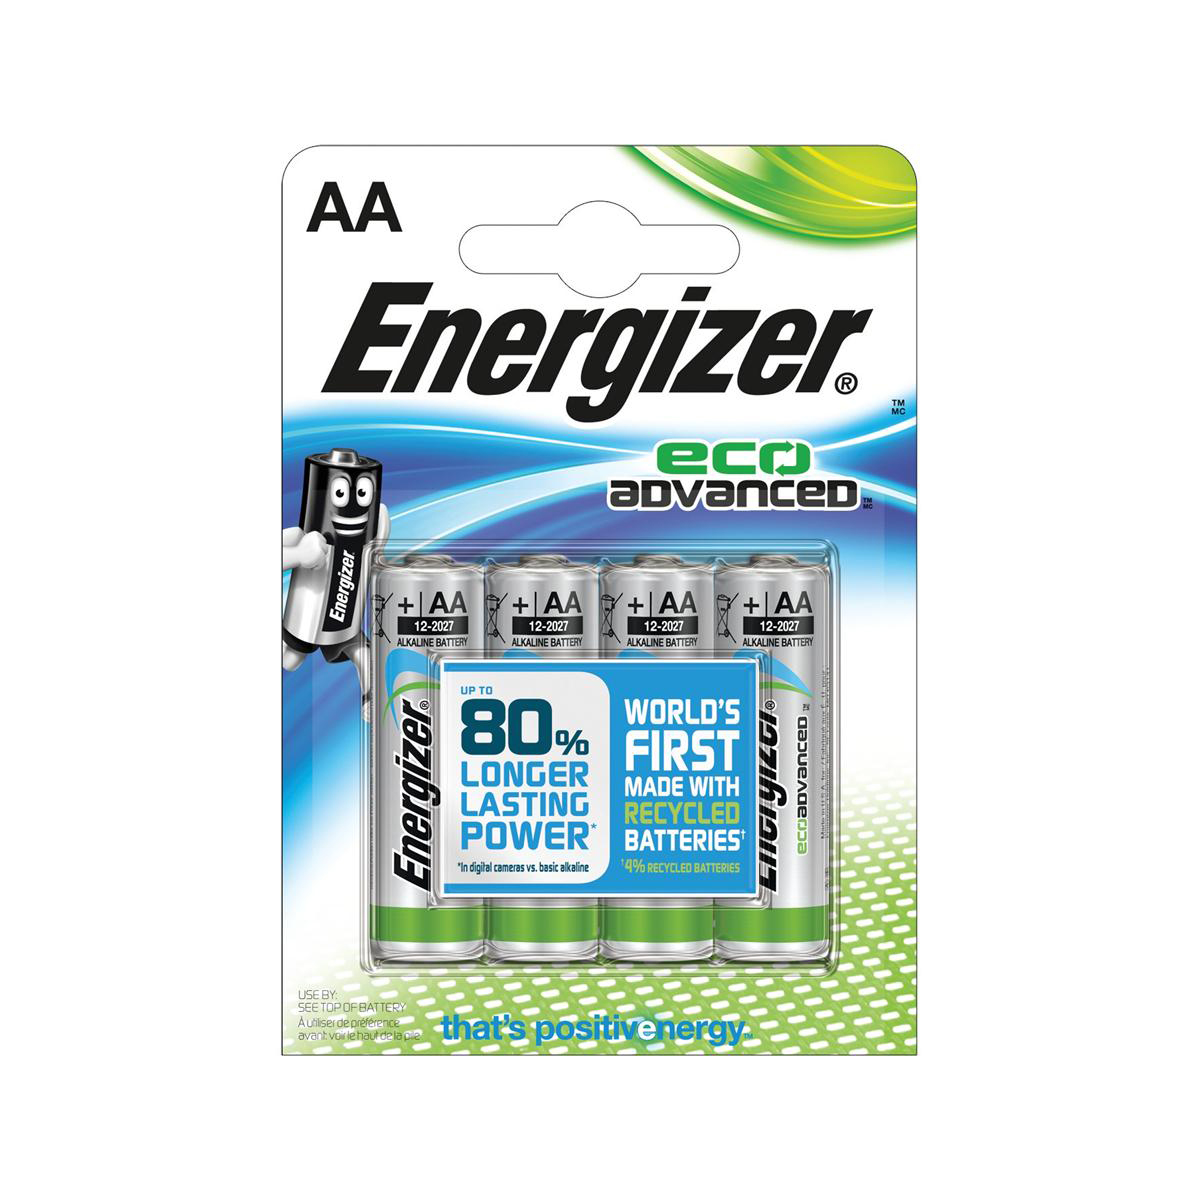 Energizer Eco Advance Batteries AA / E91 Ref E300130700 [Pack 4]